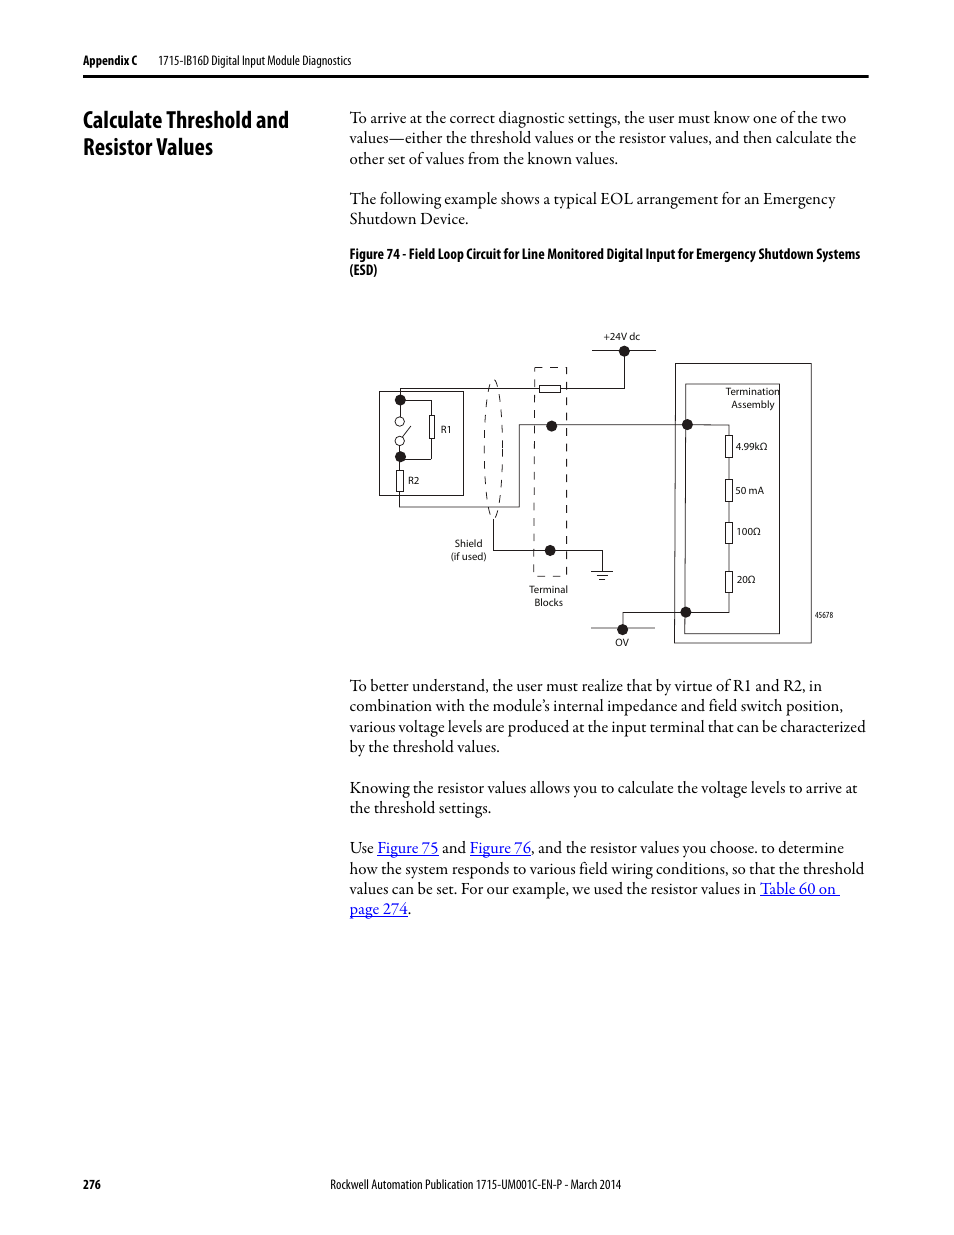 Alternator Wiring Diagram P7083 Page 2 And Schematics 2001 Eclipse Sunroof Calculate Threshold Resistor Values Rockwell Automation 1715 Of8i Redundant I O System User Manual